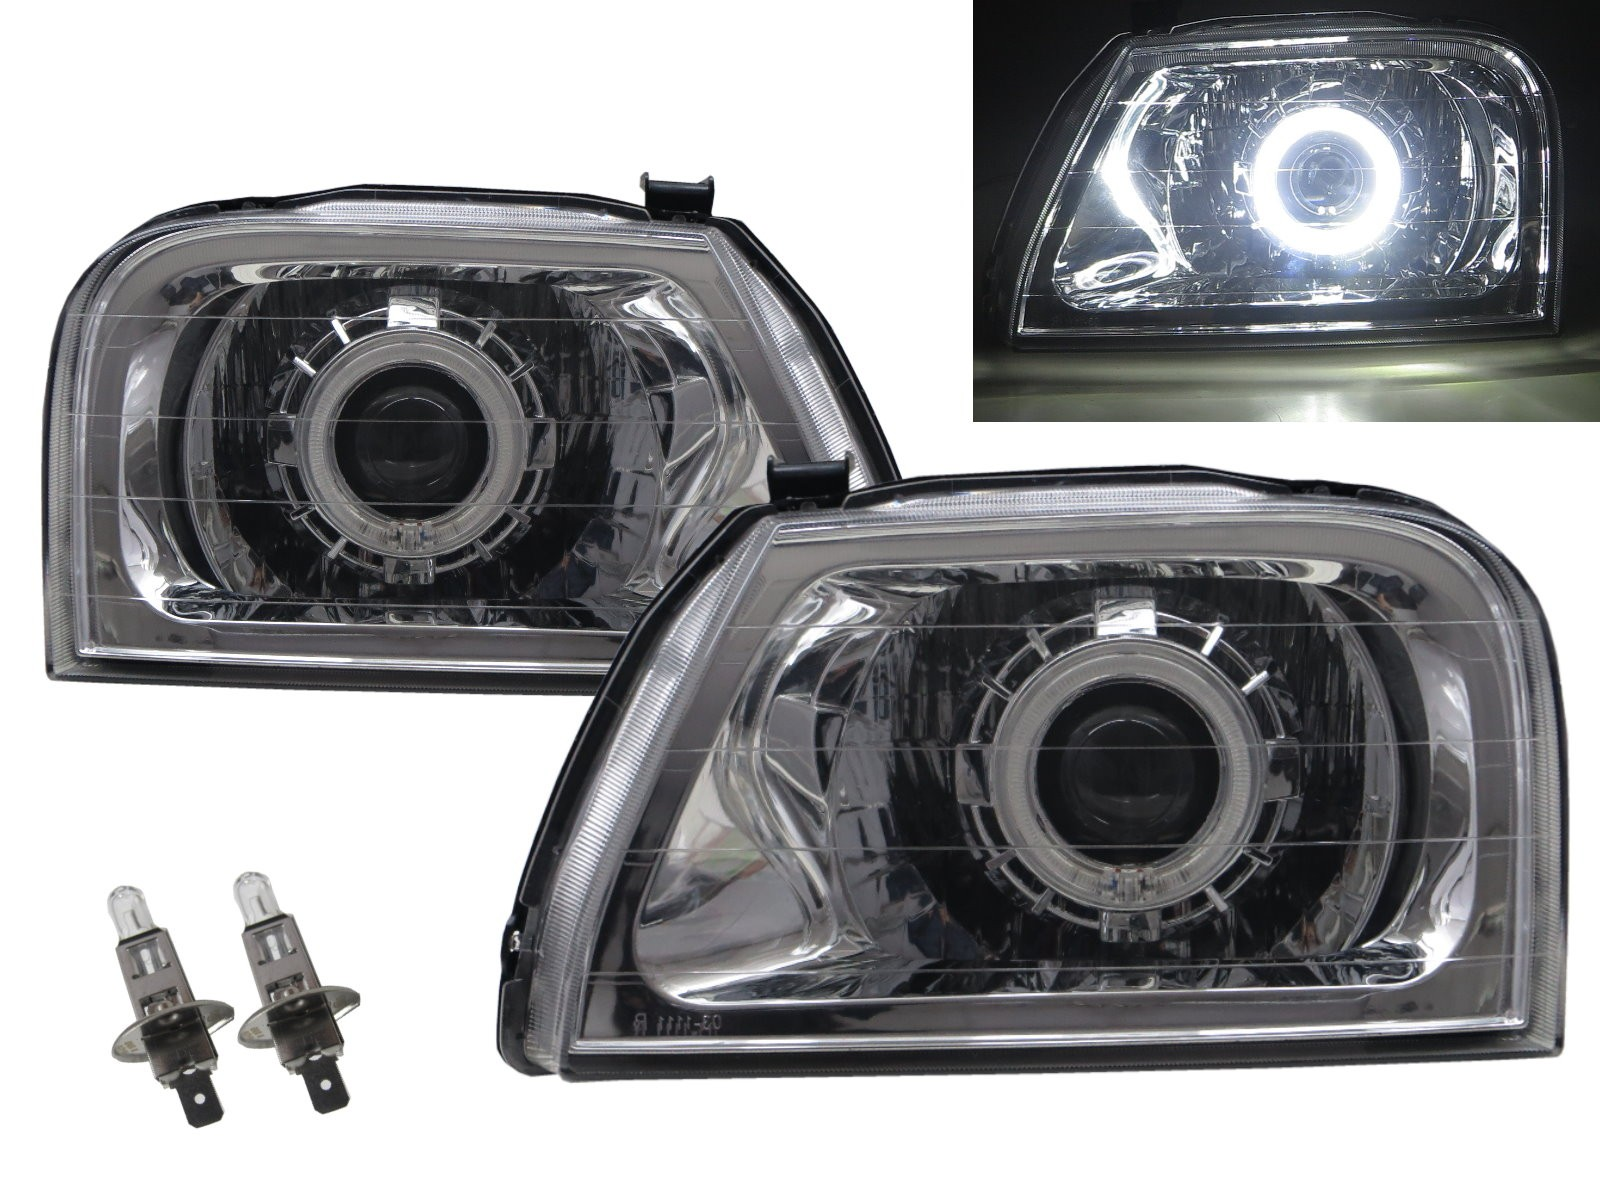 CrazyTheGod L200 First generation 1996-2001 Wagon/Pickup 2D/4D/5D Guide LED Angel-Eye Projector Headlight Headlamp Chrome for Mitsubishi LHD